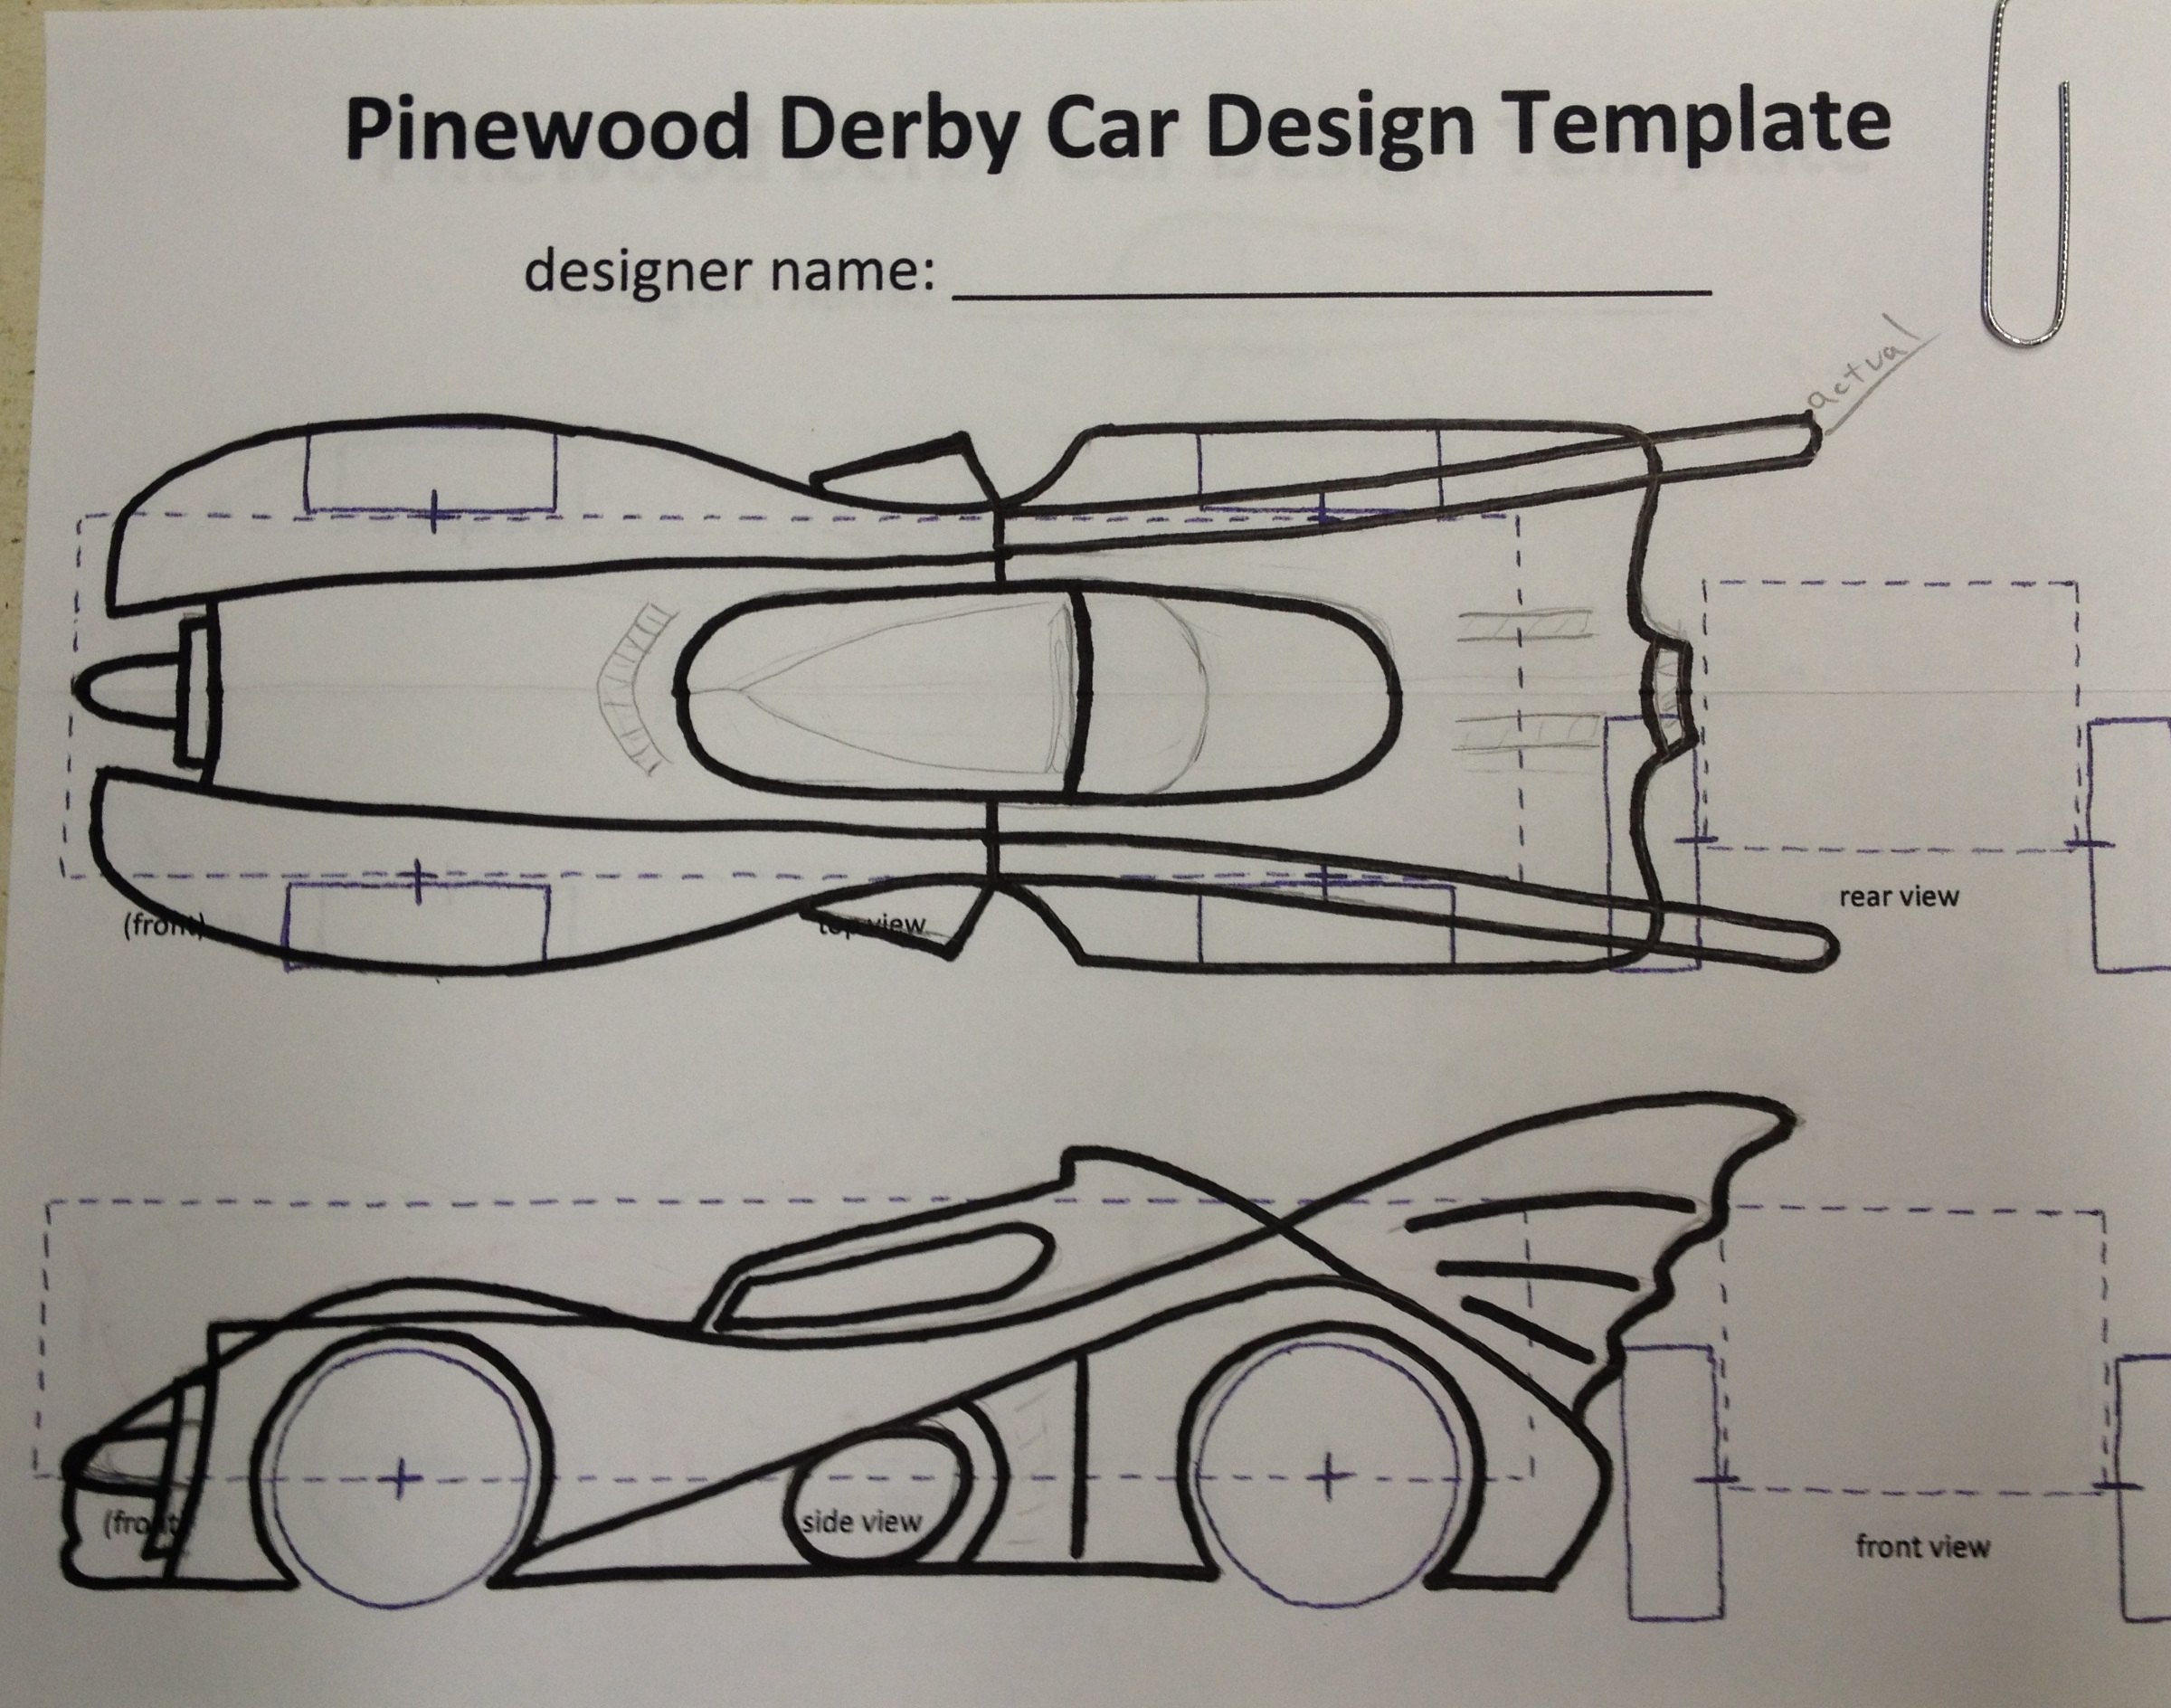 free templates for pinewood derby cars - how to build an awesome batmobile pinewood derby car